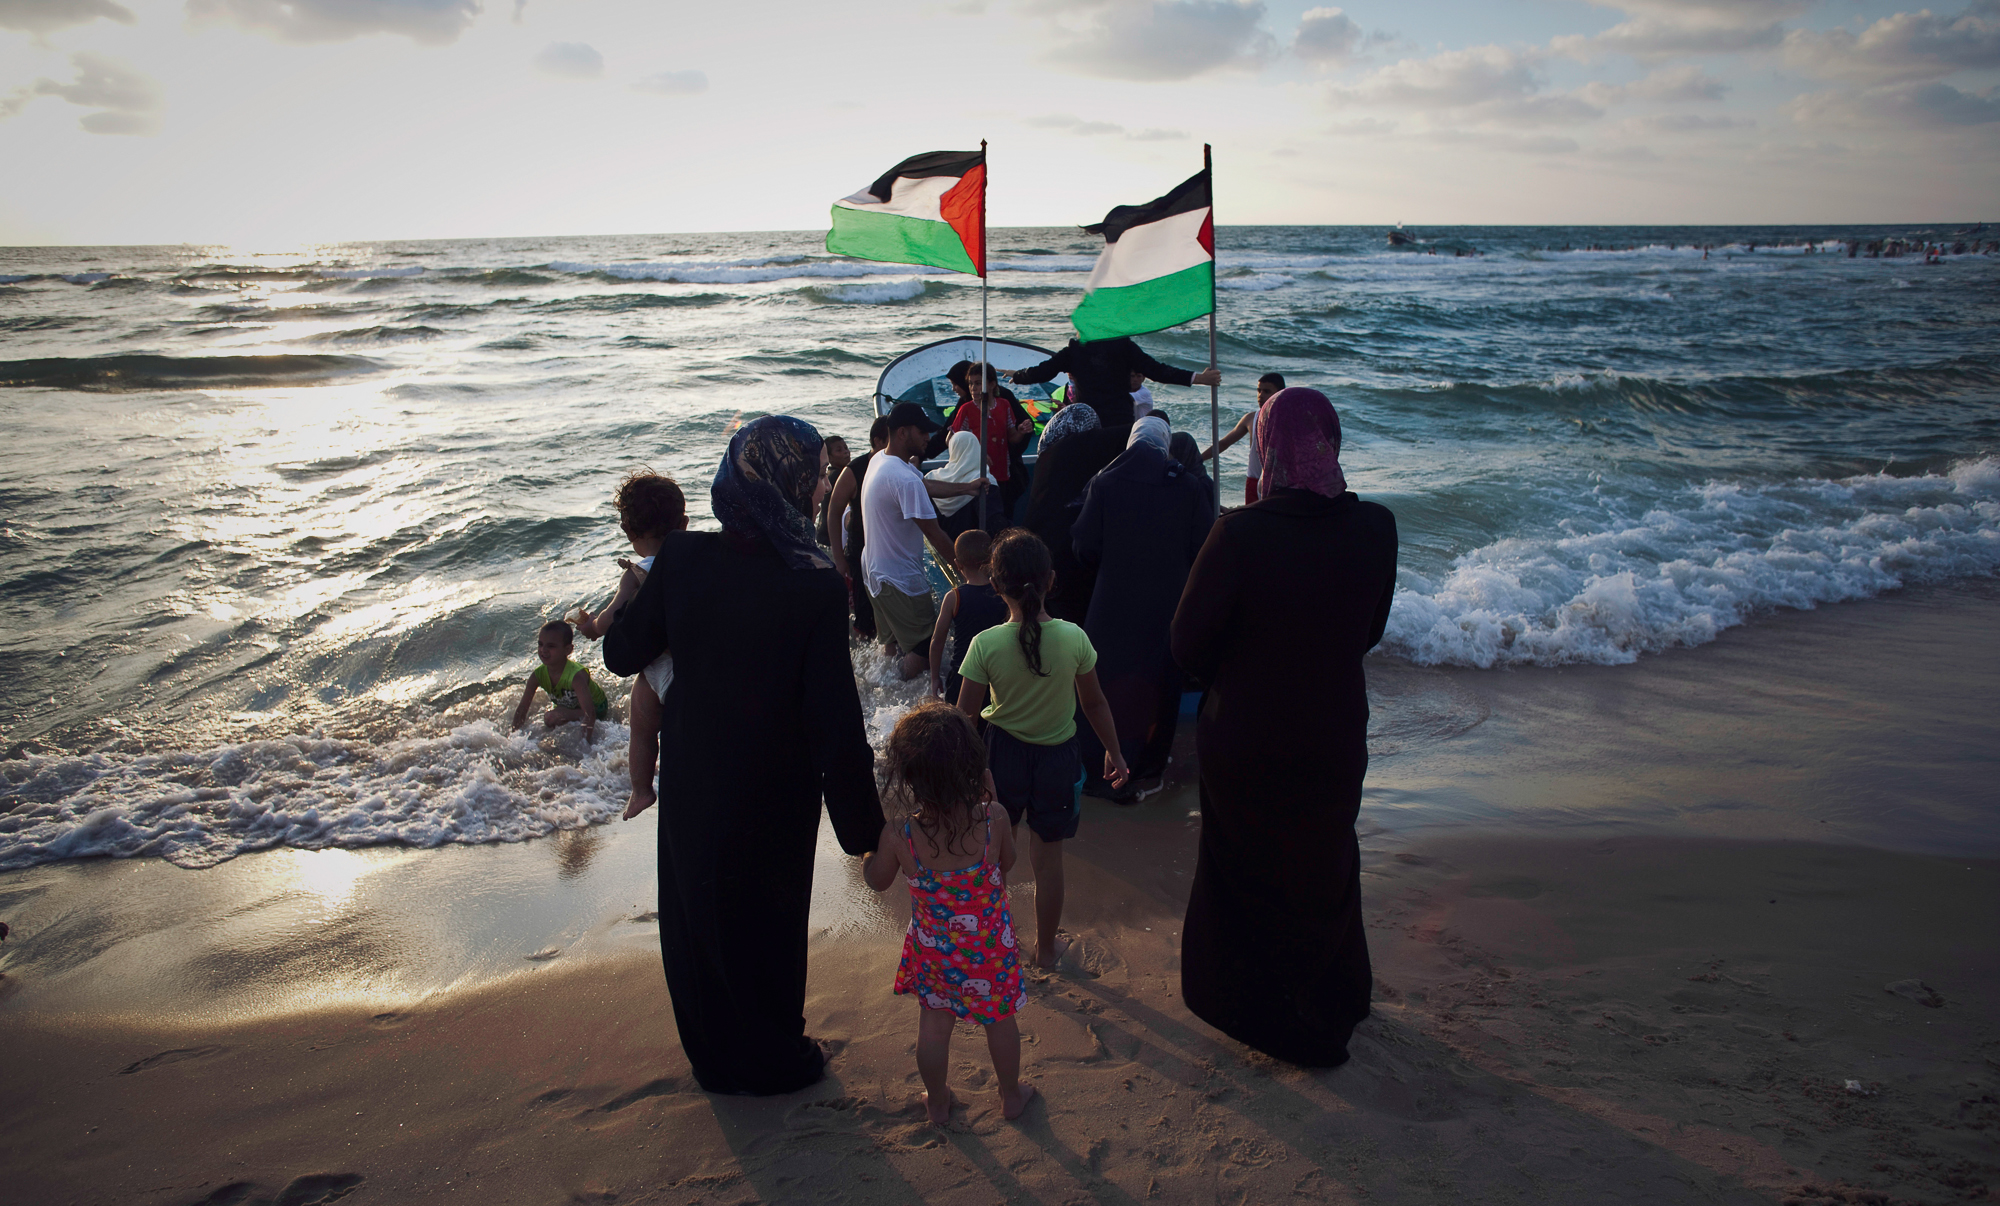 Palestinian women and children waiting for their turn for a boat ride in Gaza's sea. Photo by Eman Mohammed/Getty Images for WHAT'S NEXT